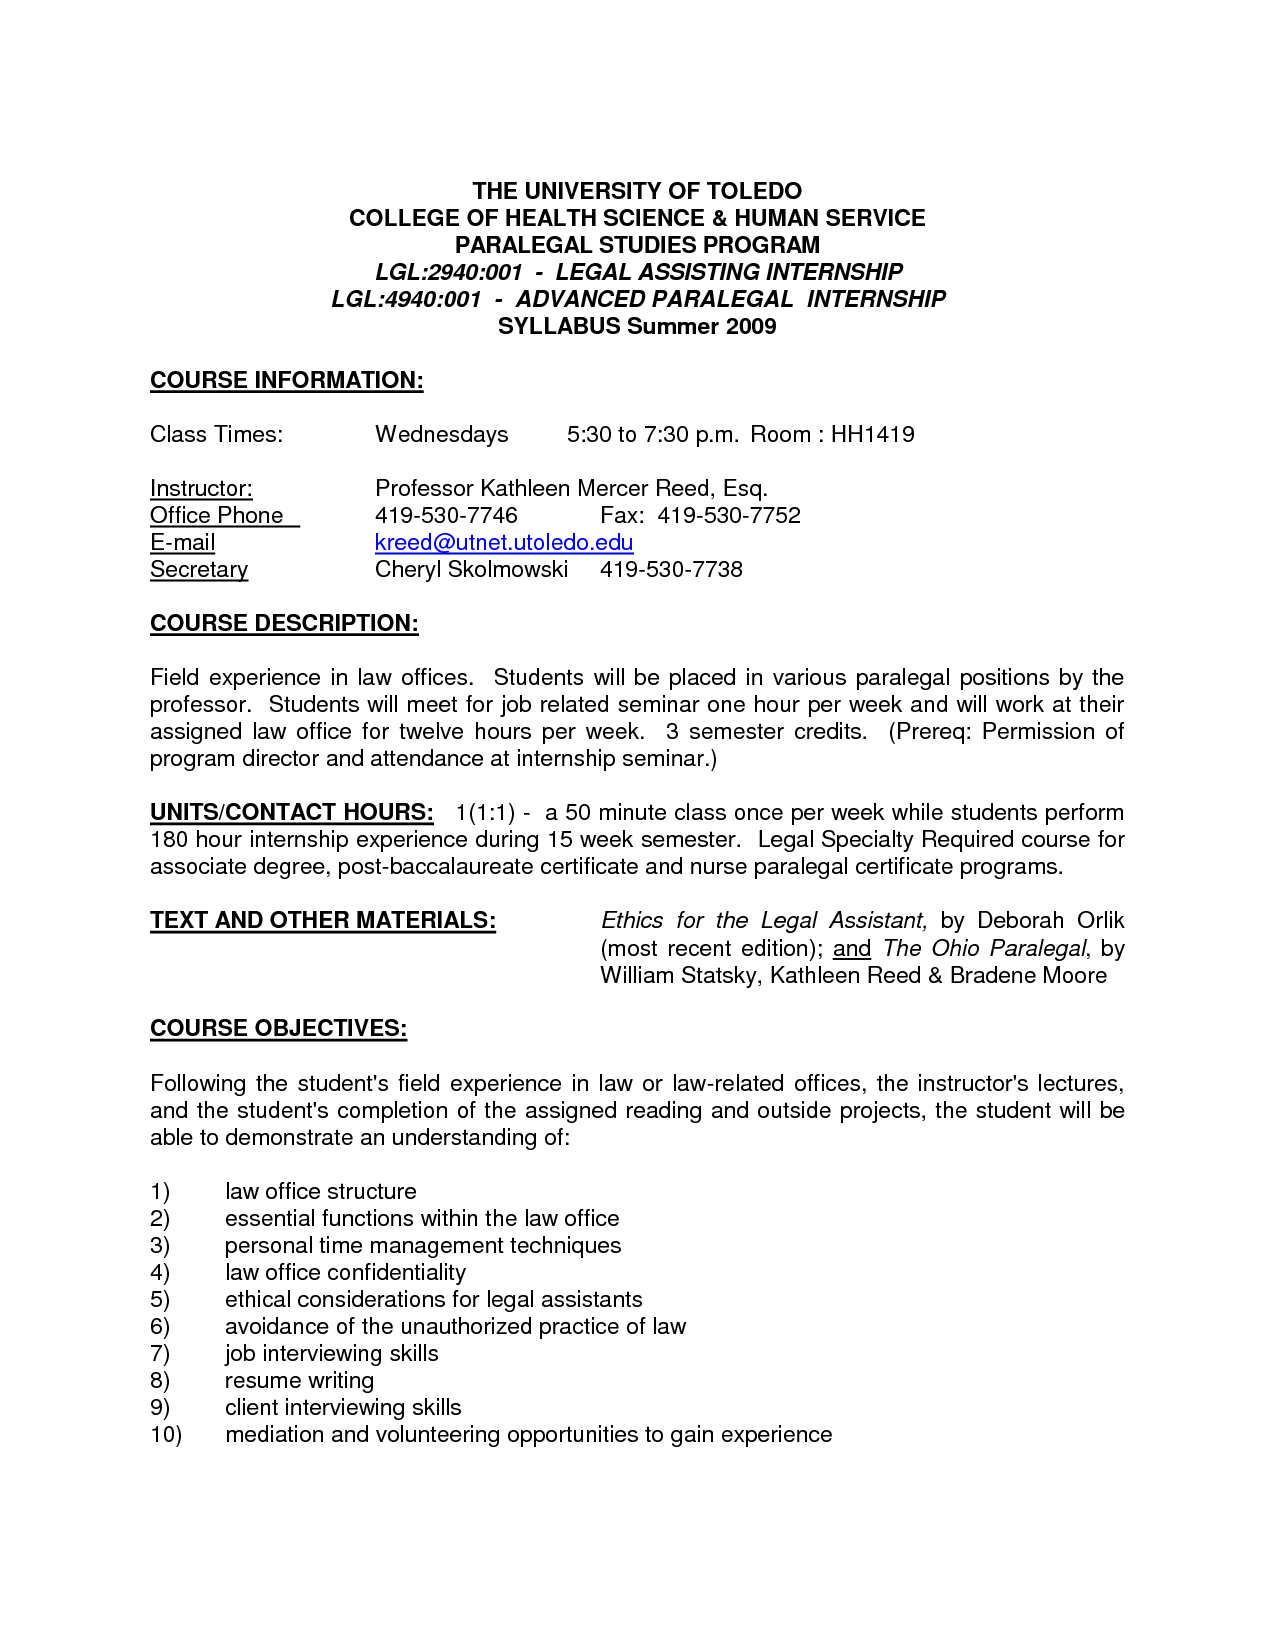 Personal Injury Paralegal Cover Letter Sample Executive Assistant Letters  Paralegal Cover Letter Examples